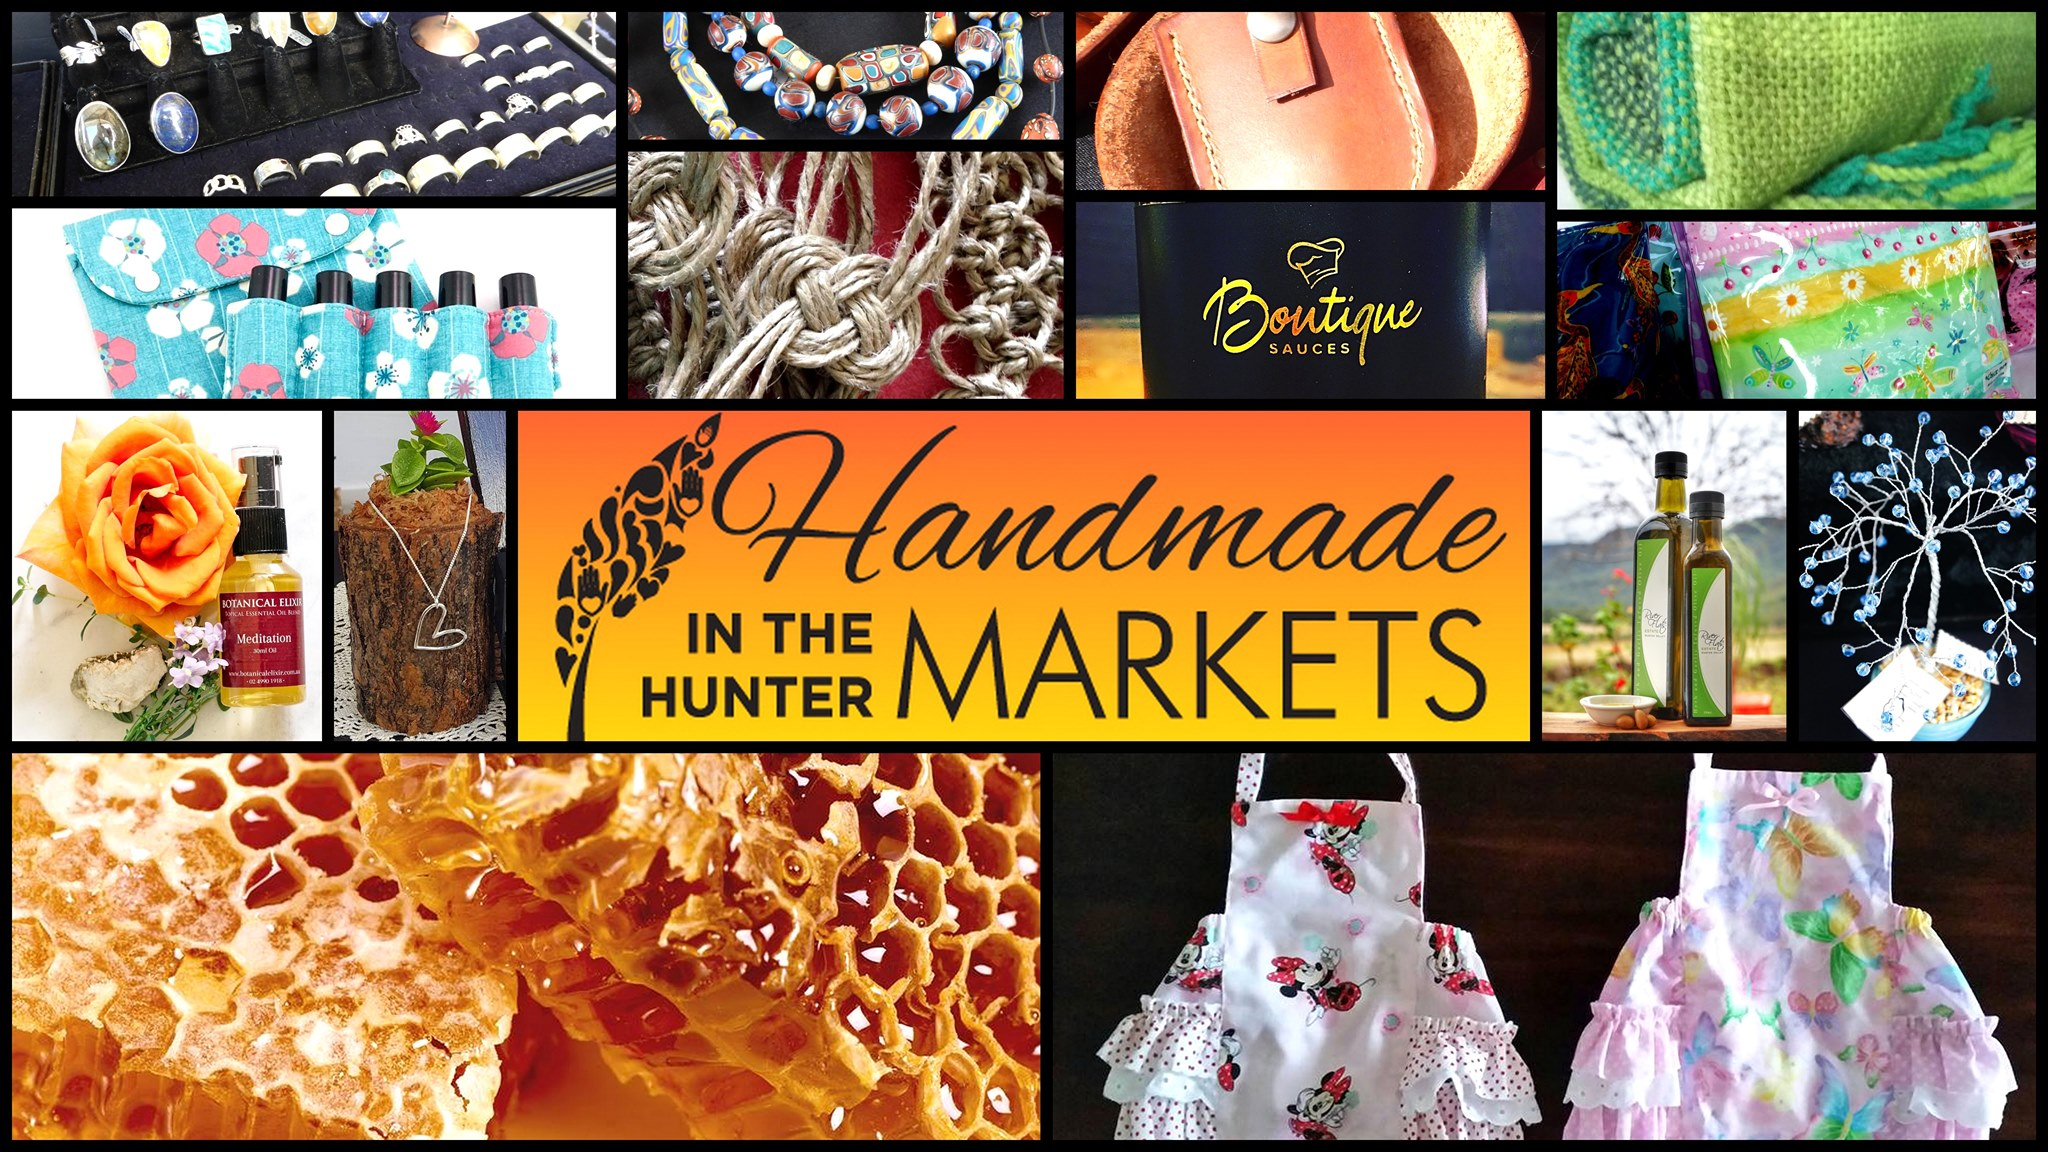 Handmade in the Hunter Markets